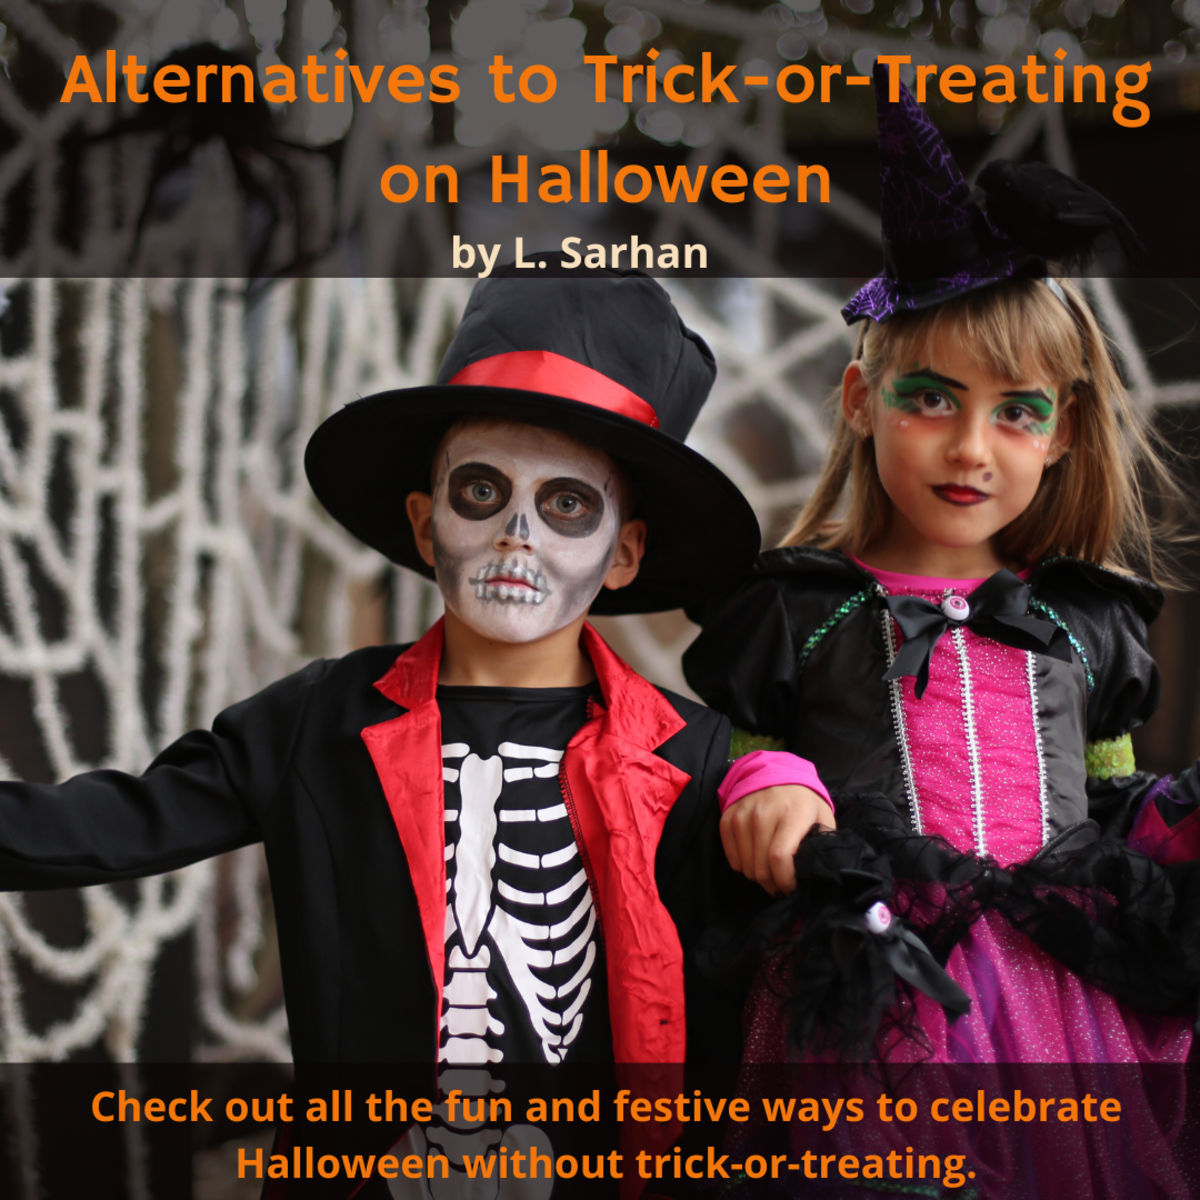 Check out all the fun and festive ways to celebrate Halloween without trick-or-treating.